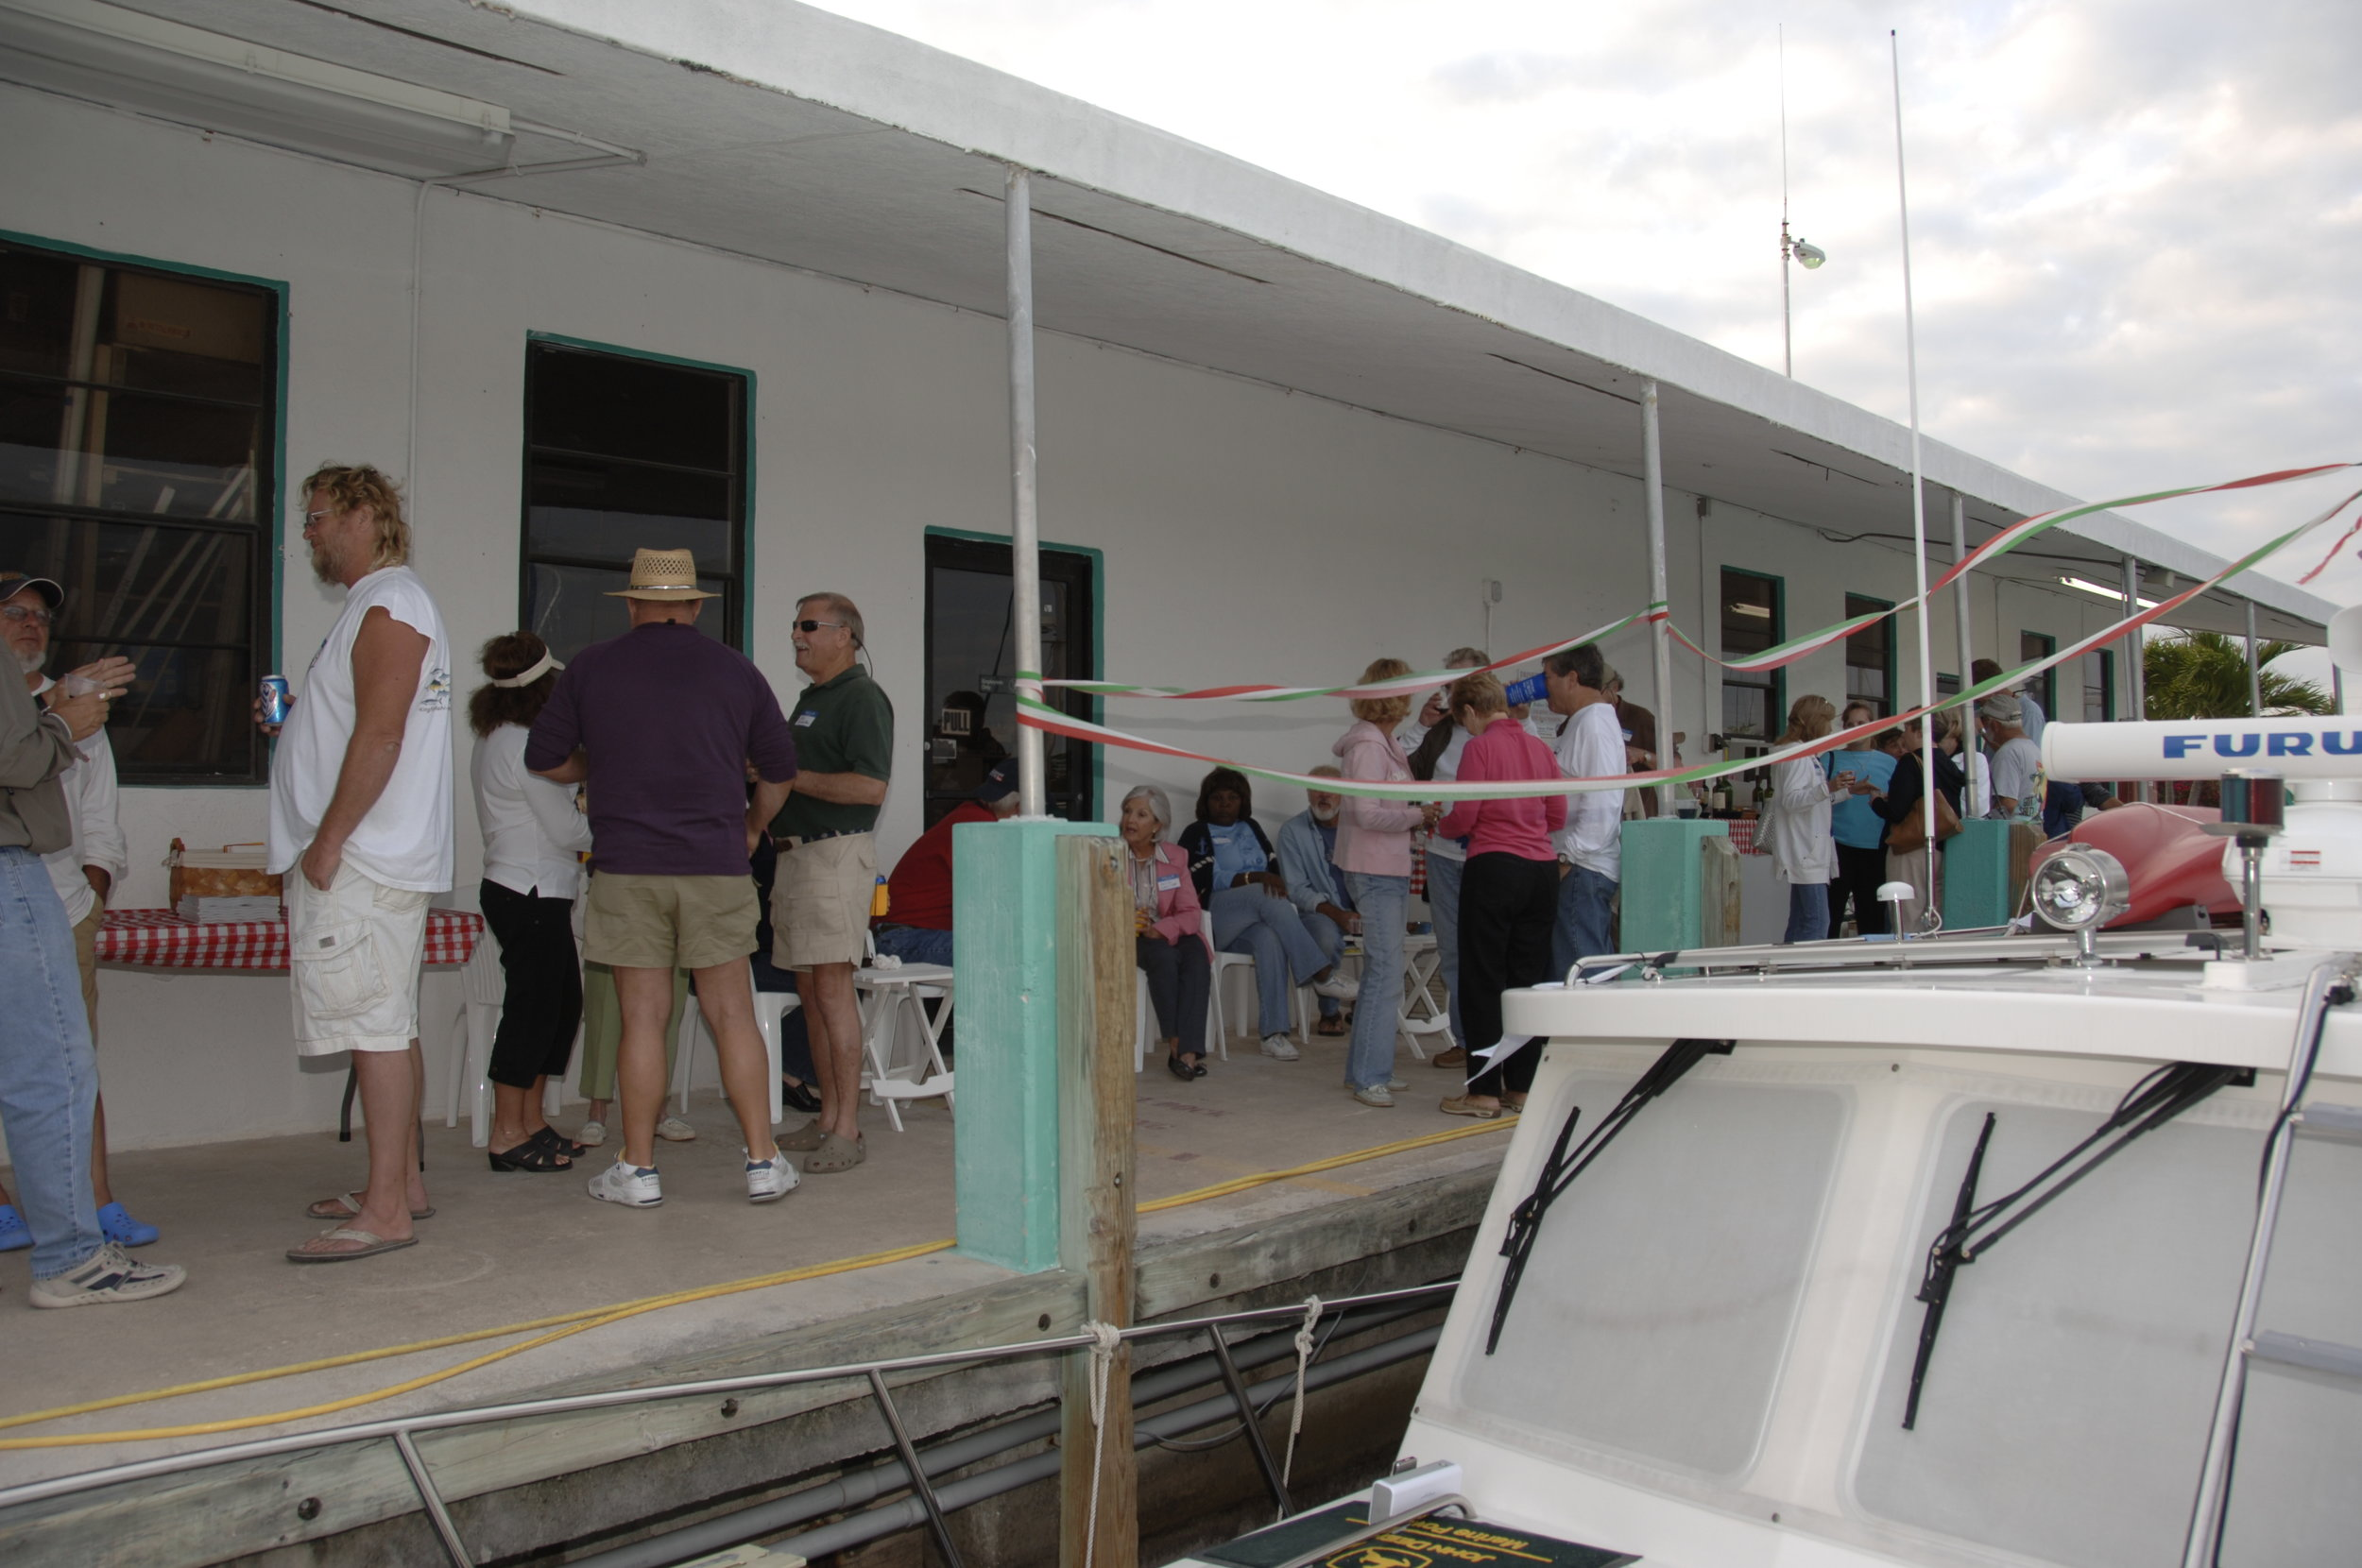 It's so fun to look at all of these pictures from the past. One year Laurene and I hosted a PassageMaker pizza party at our marina in Marathon for all of the many friends who made the Florida Keys their winter home. It was great fun and highlighted why meeting and sharing with other cruisers is such a wonderful part of cruising.